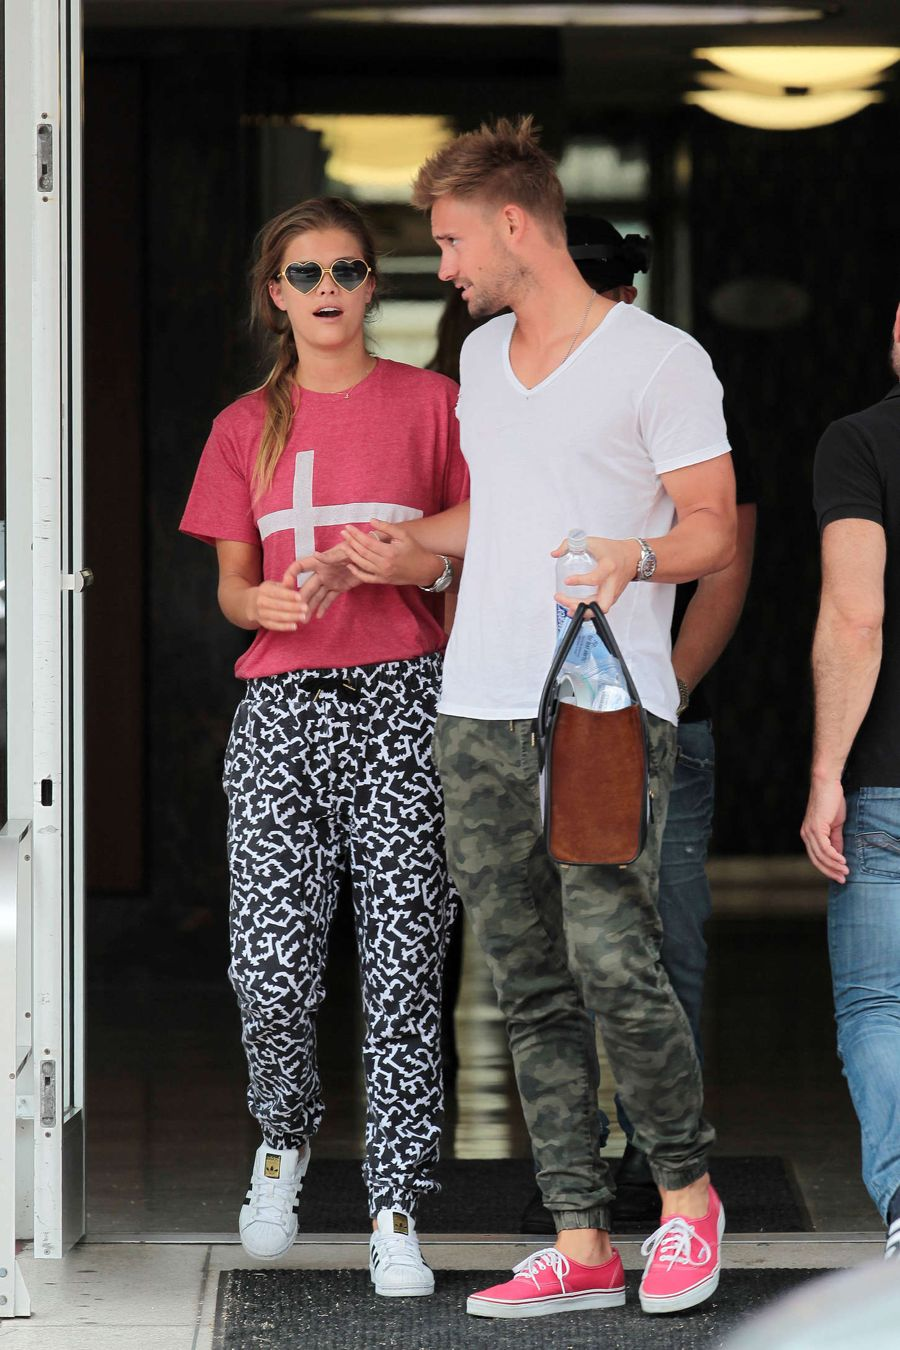 Nina Agdal Leaving the Dentist Clinic in Heart Goggles